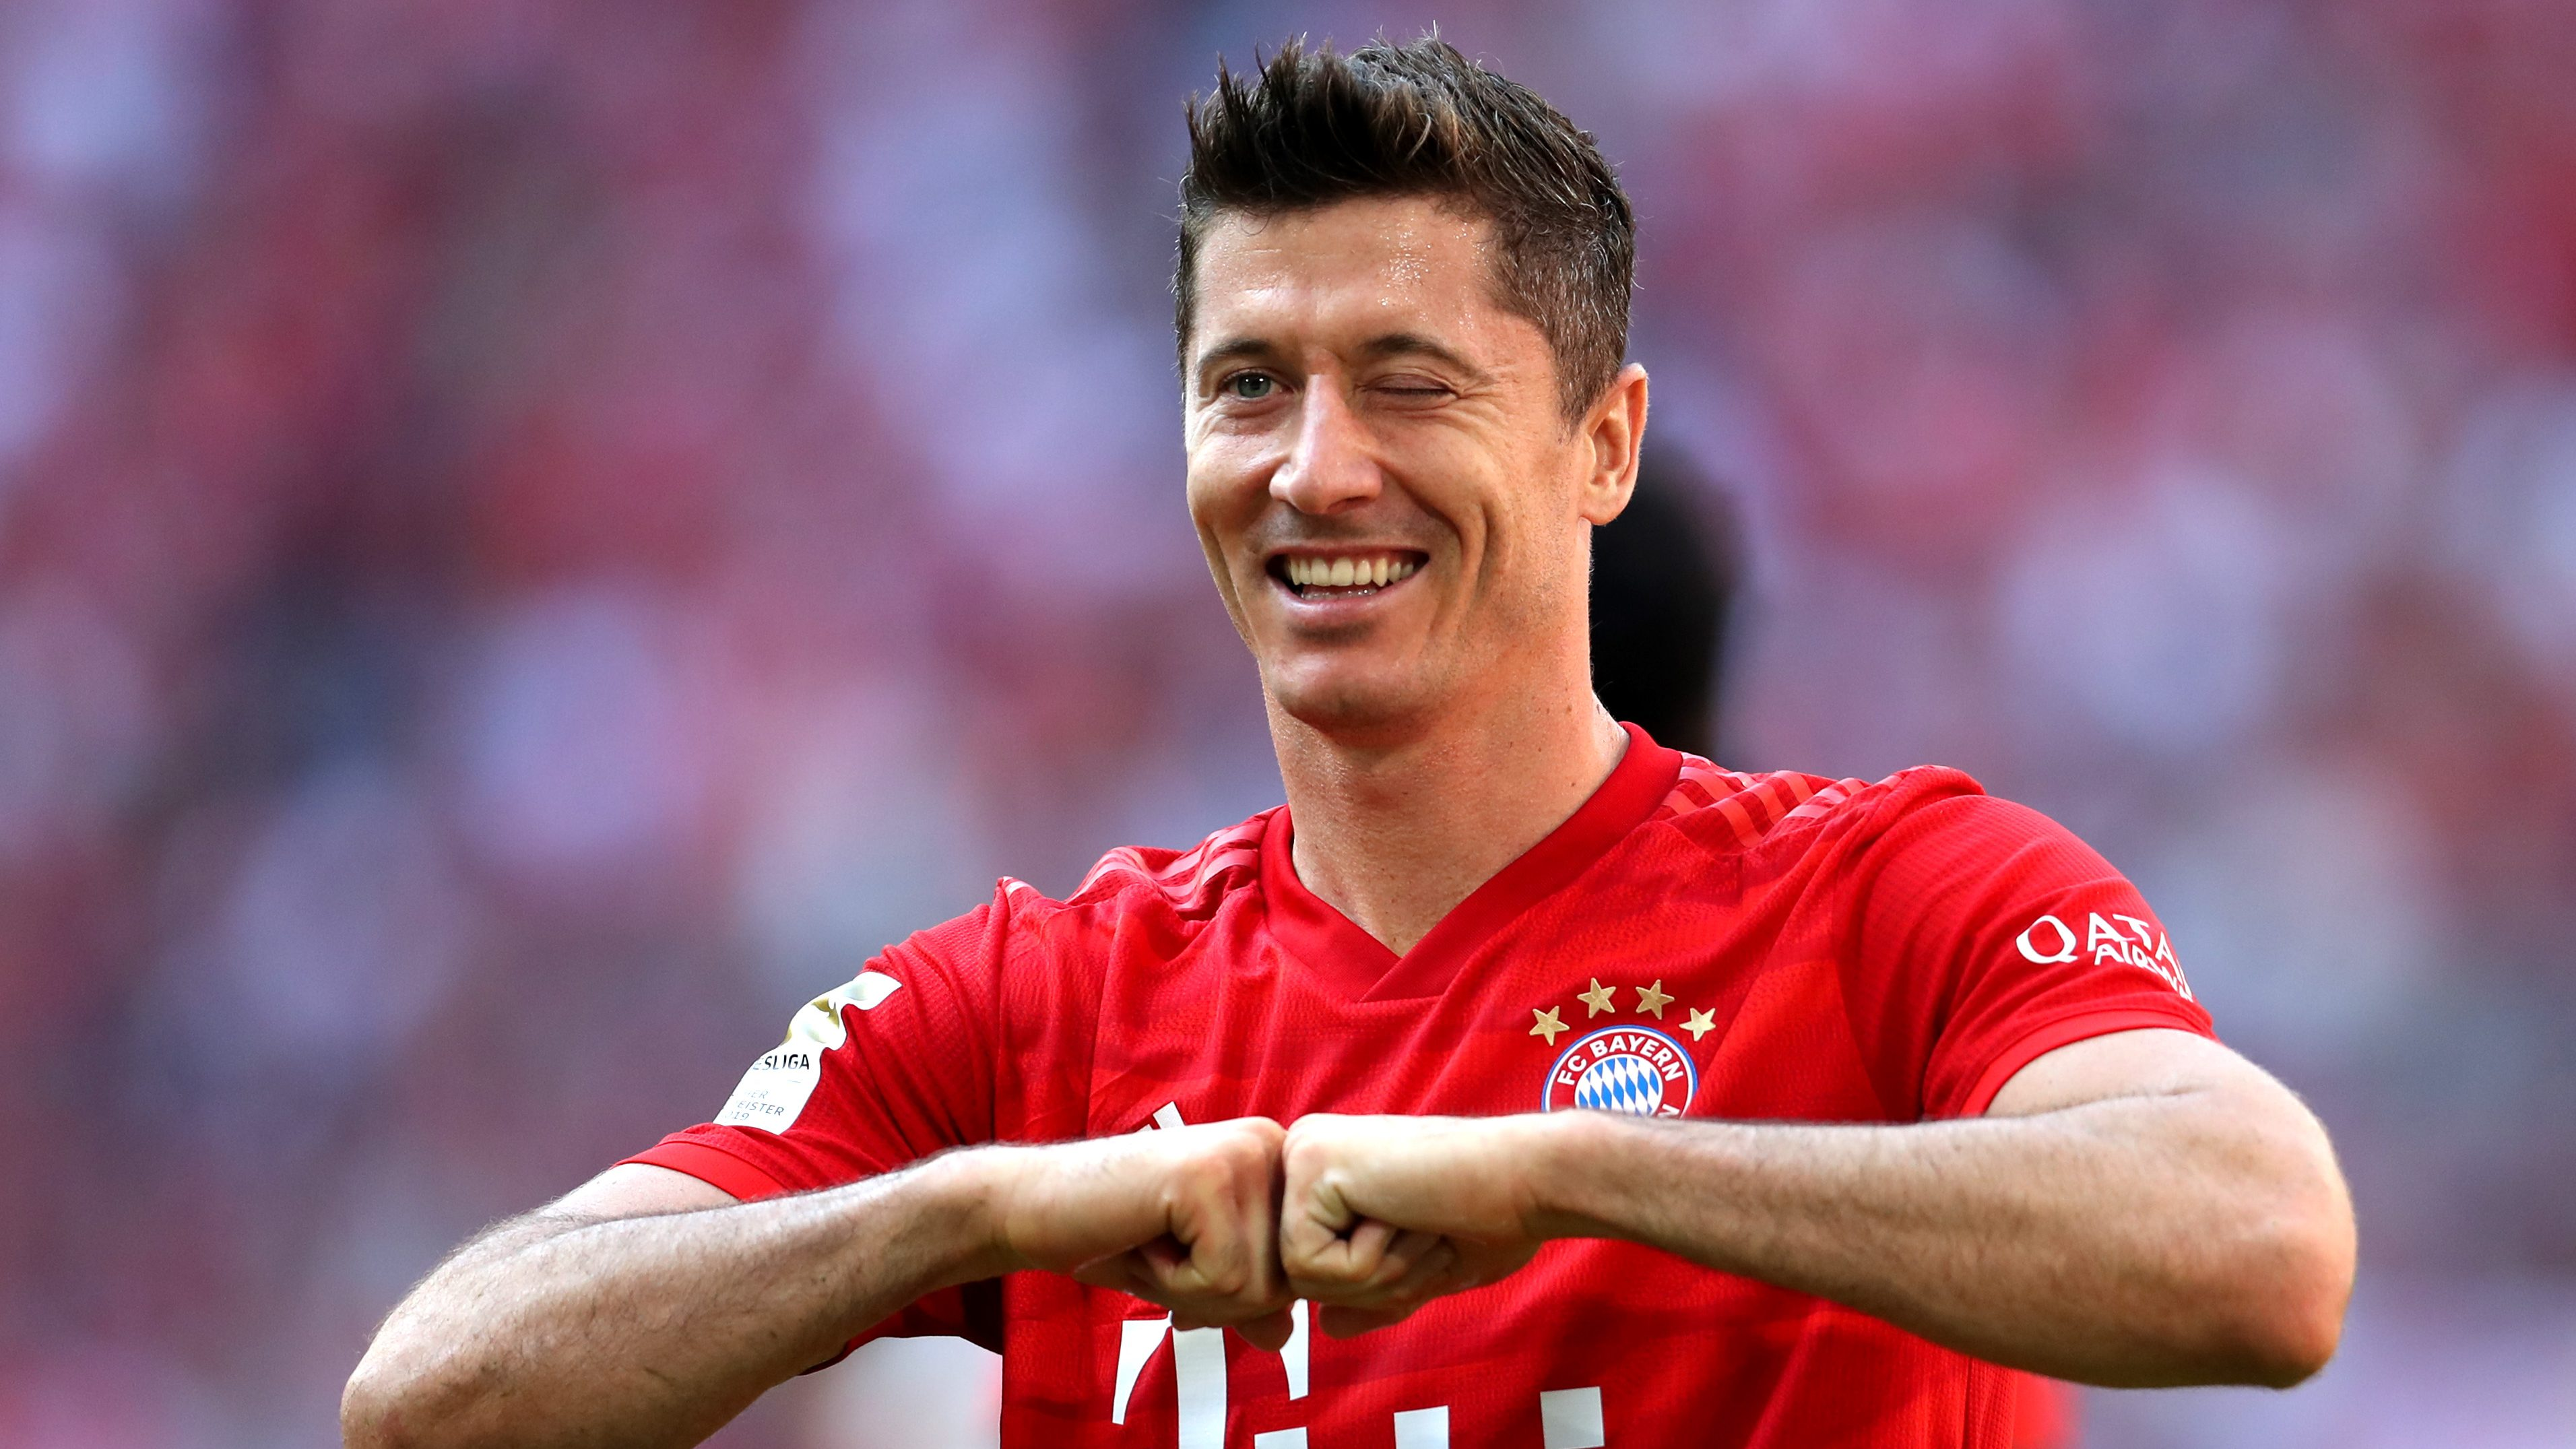 Lewandowski reveals player who deserves to win Ballon d'Or this season | PEAKVIBEZ